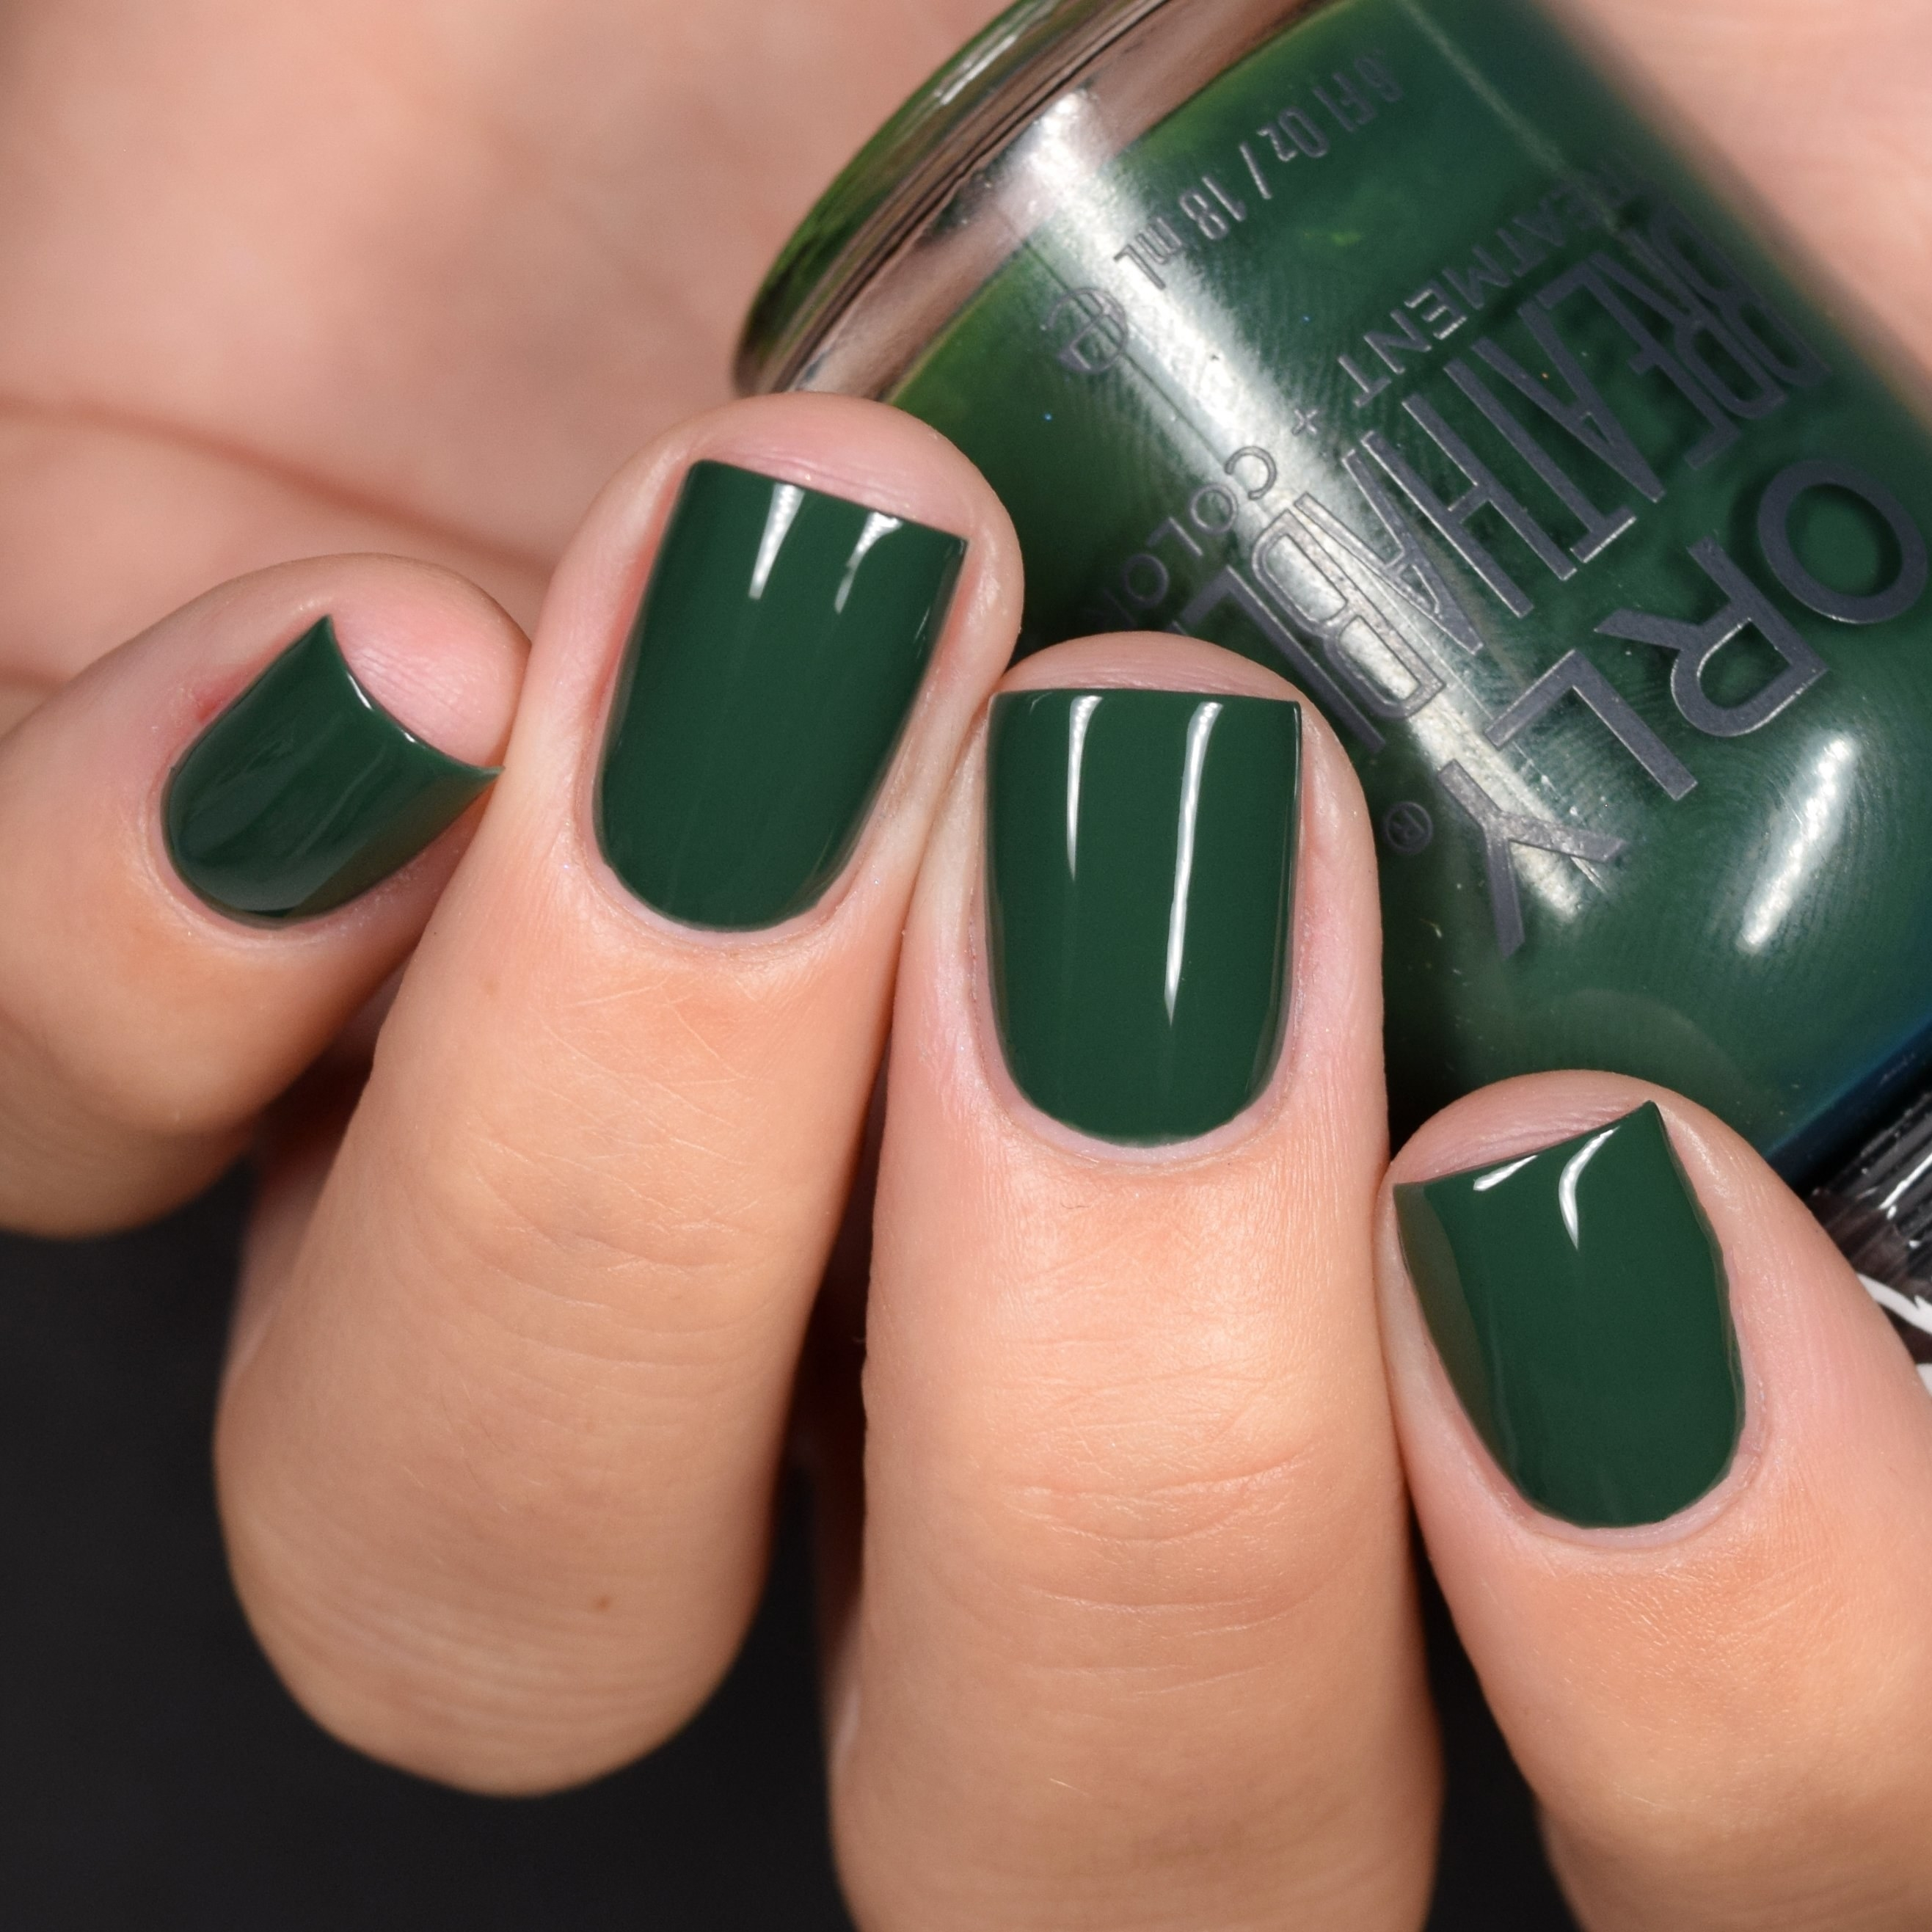 Fingers wearing dark green nail polish